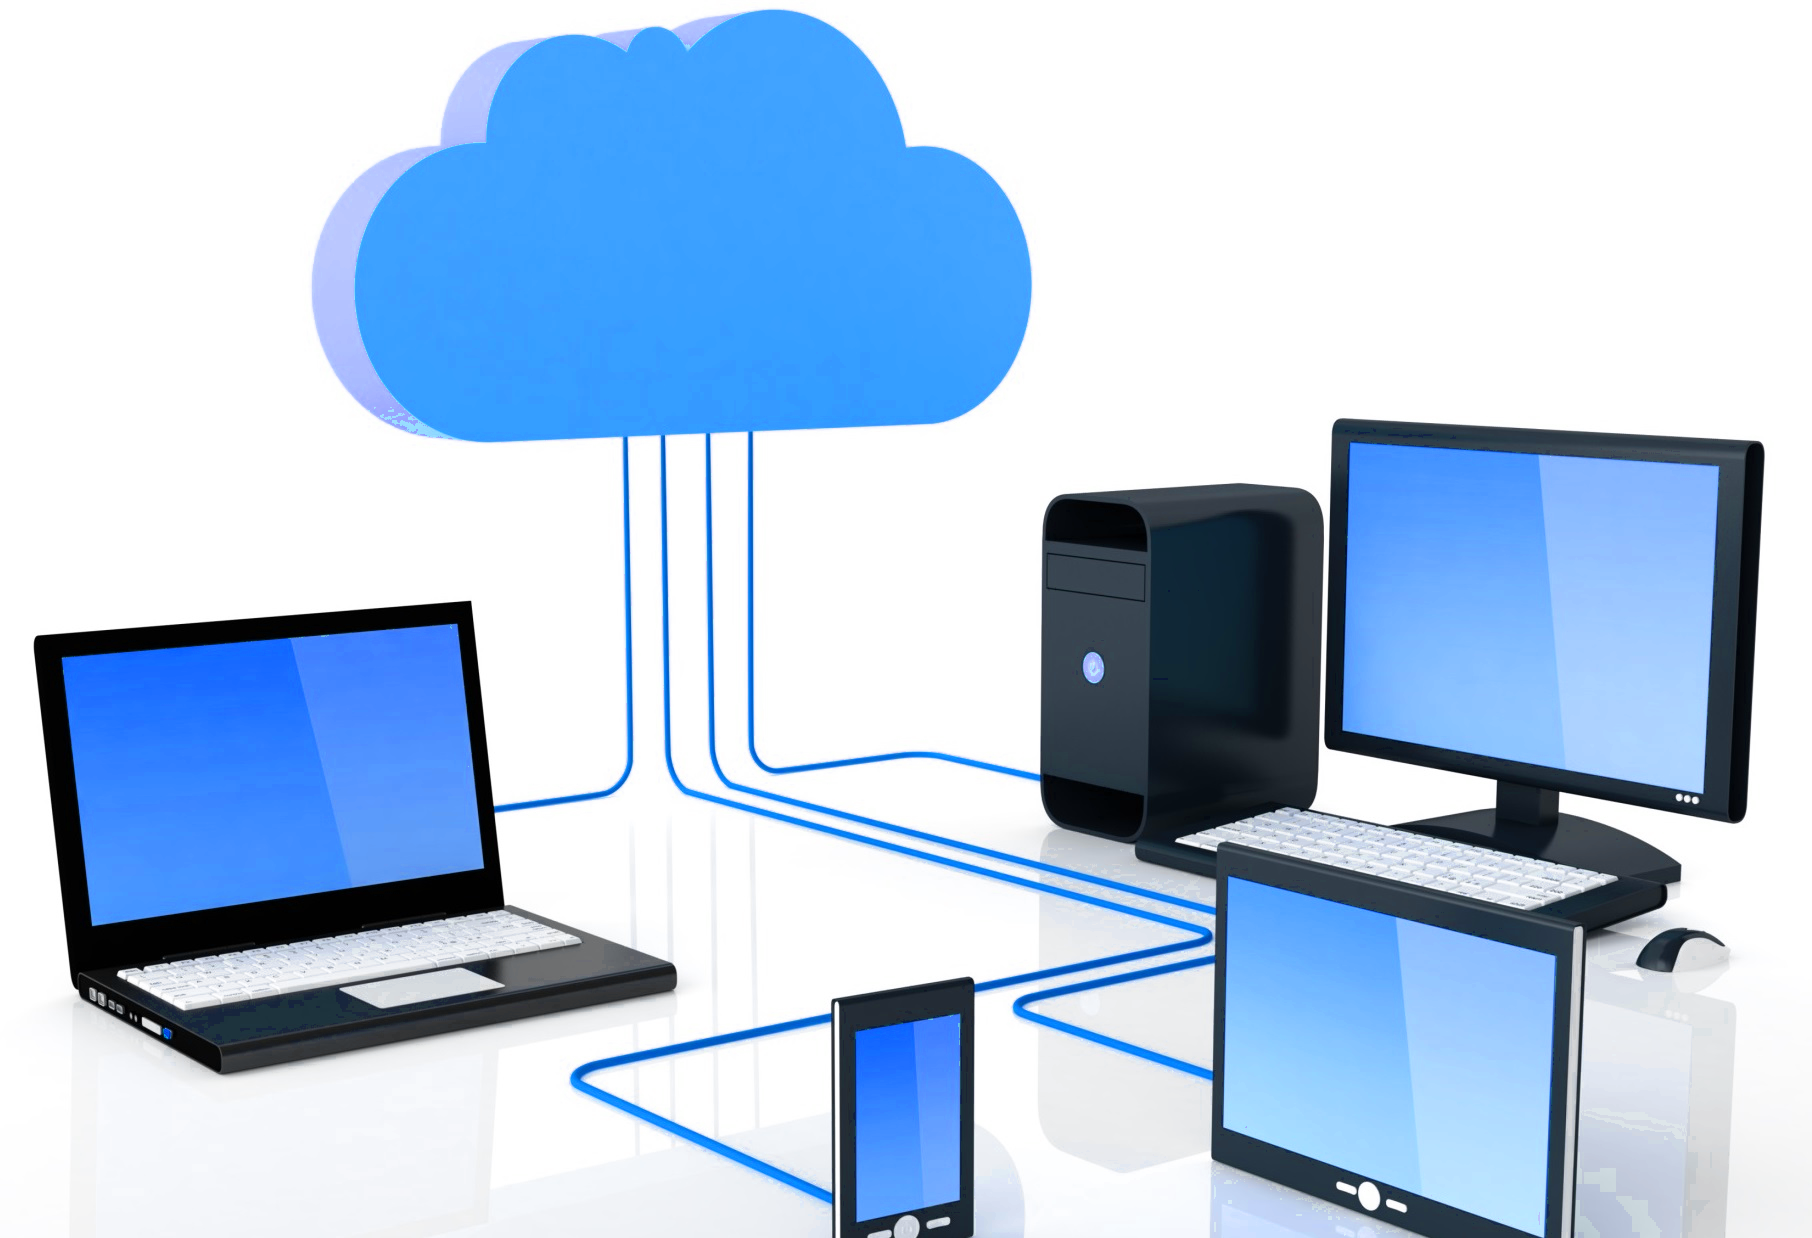 Techsys cloud computing